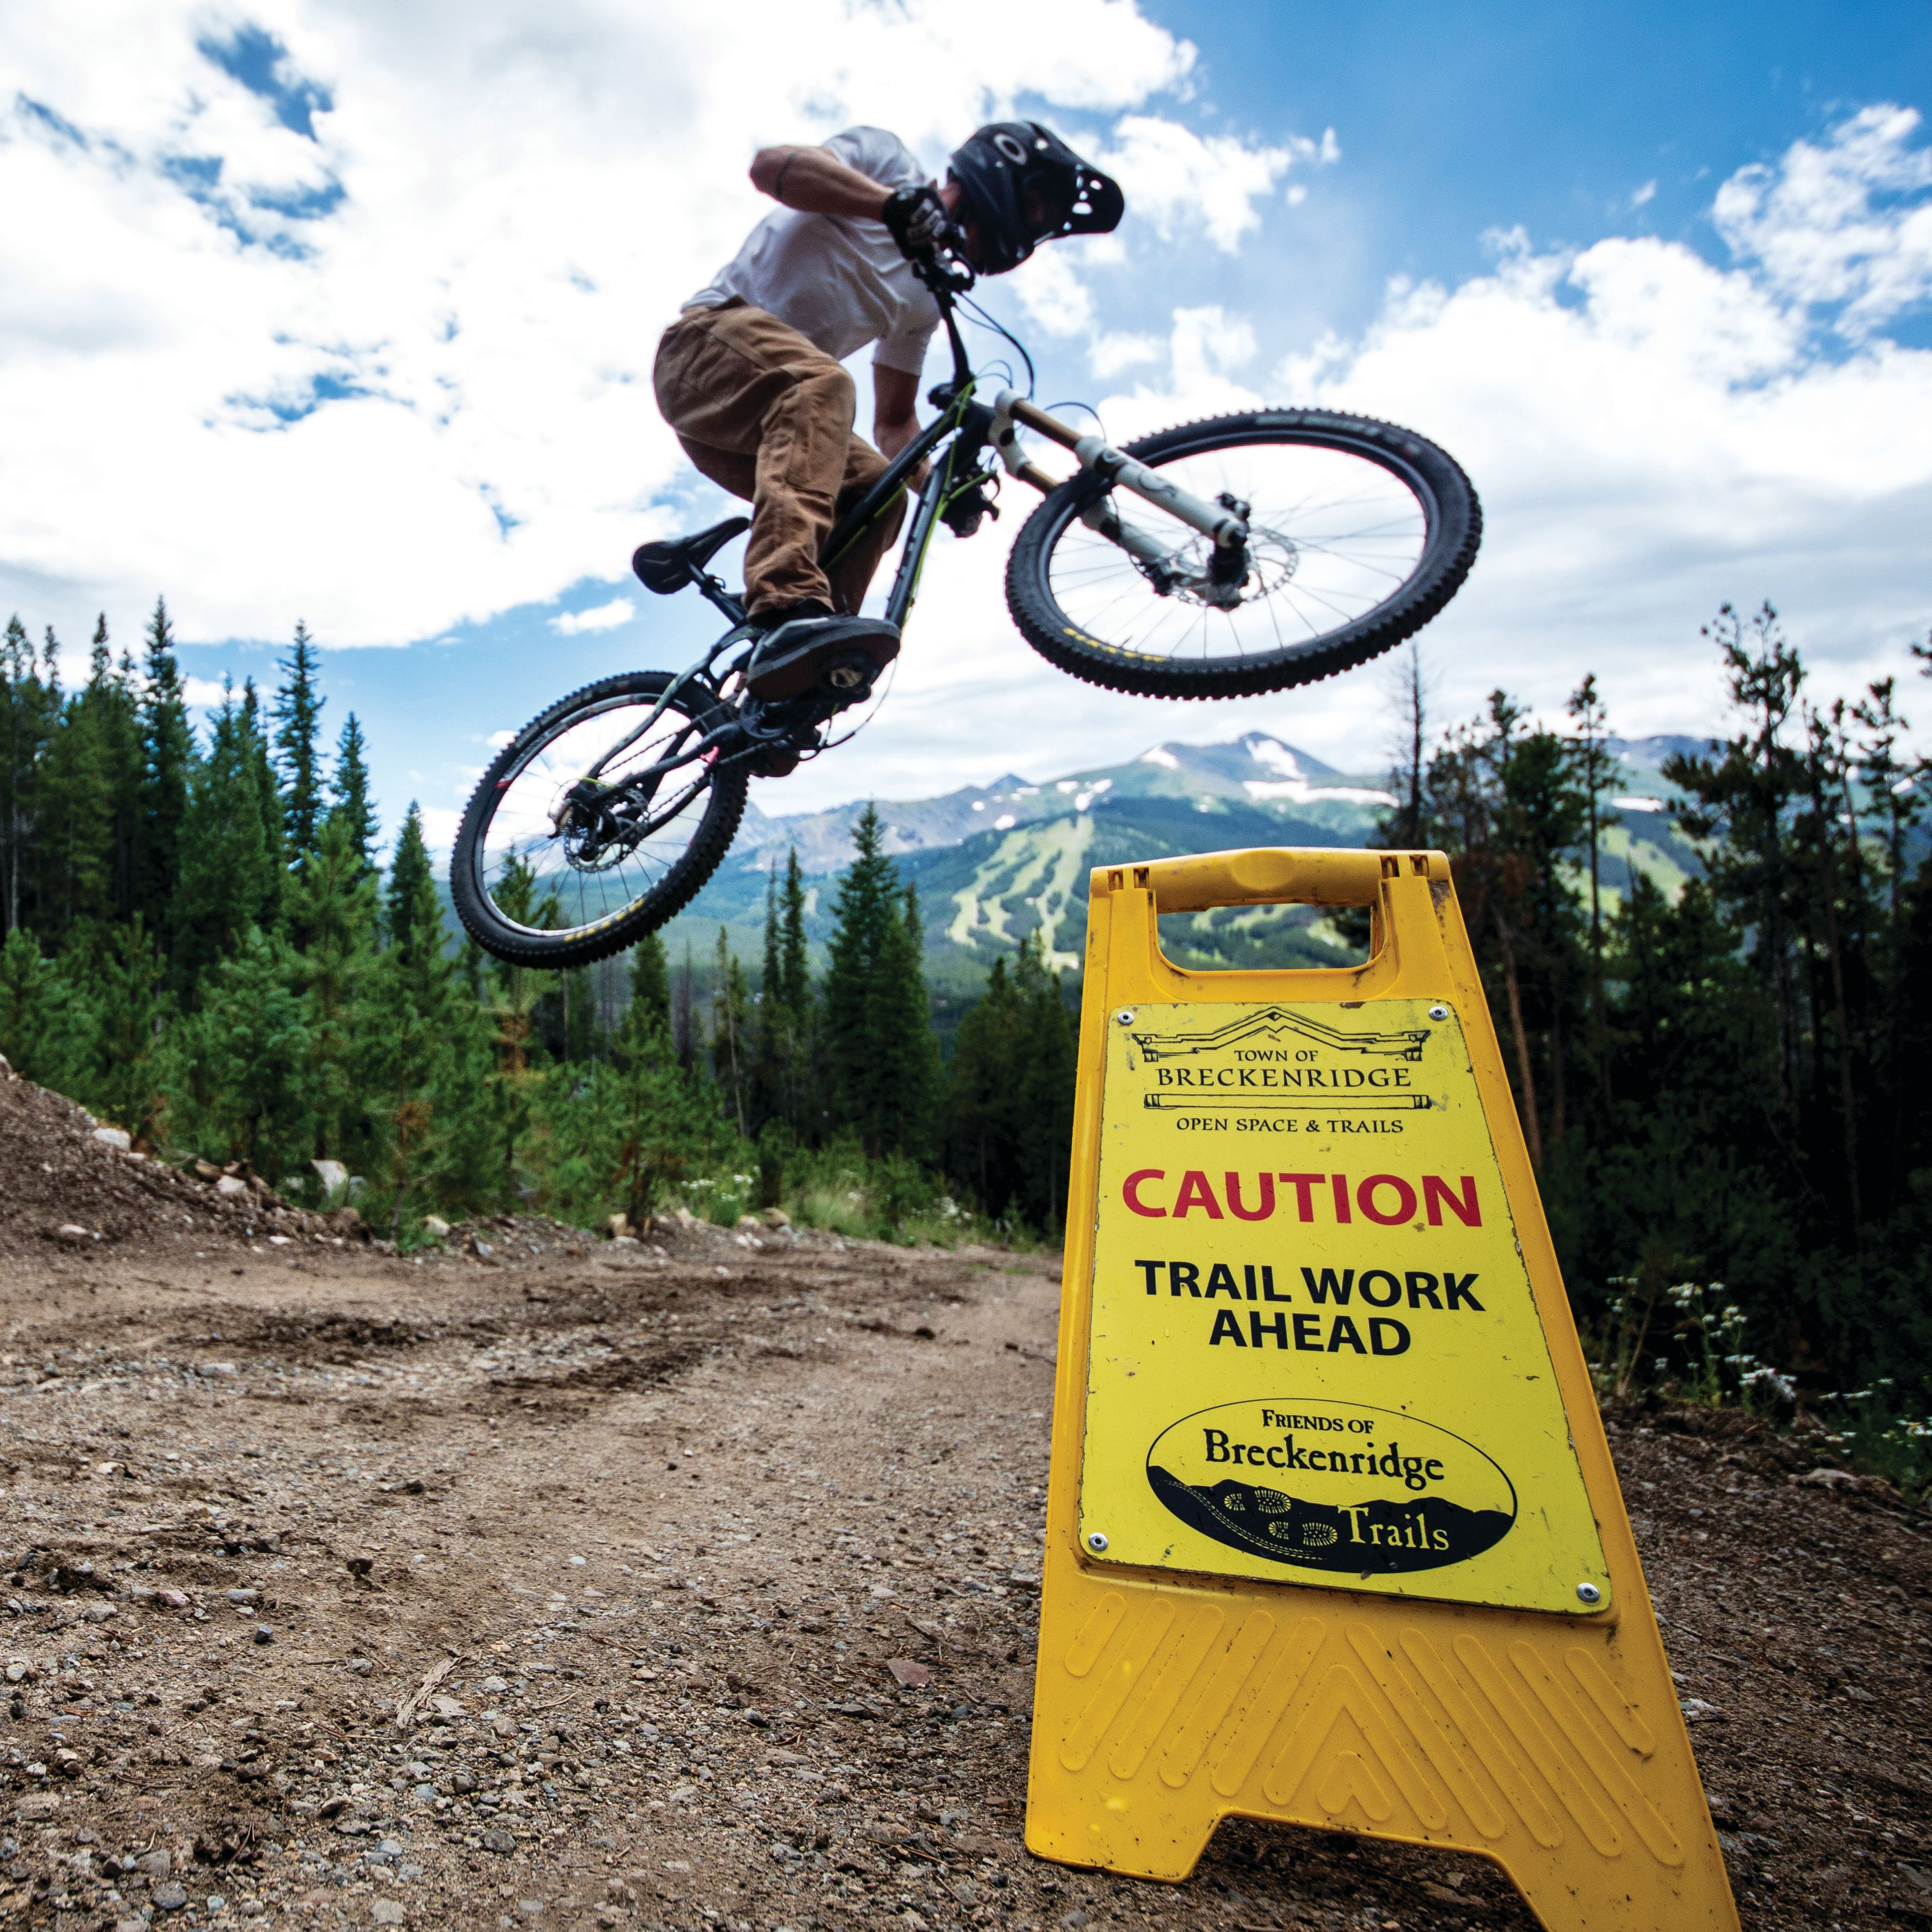 Cosu summer 15 trail tenders featured bicyclist sfp8ds